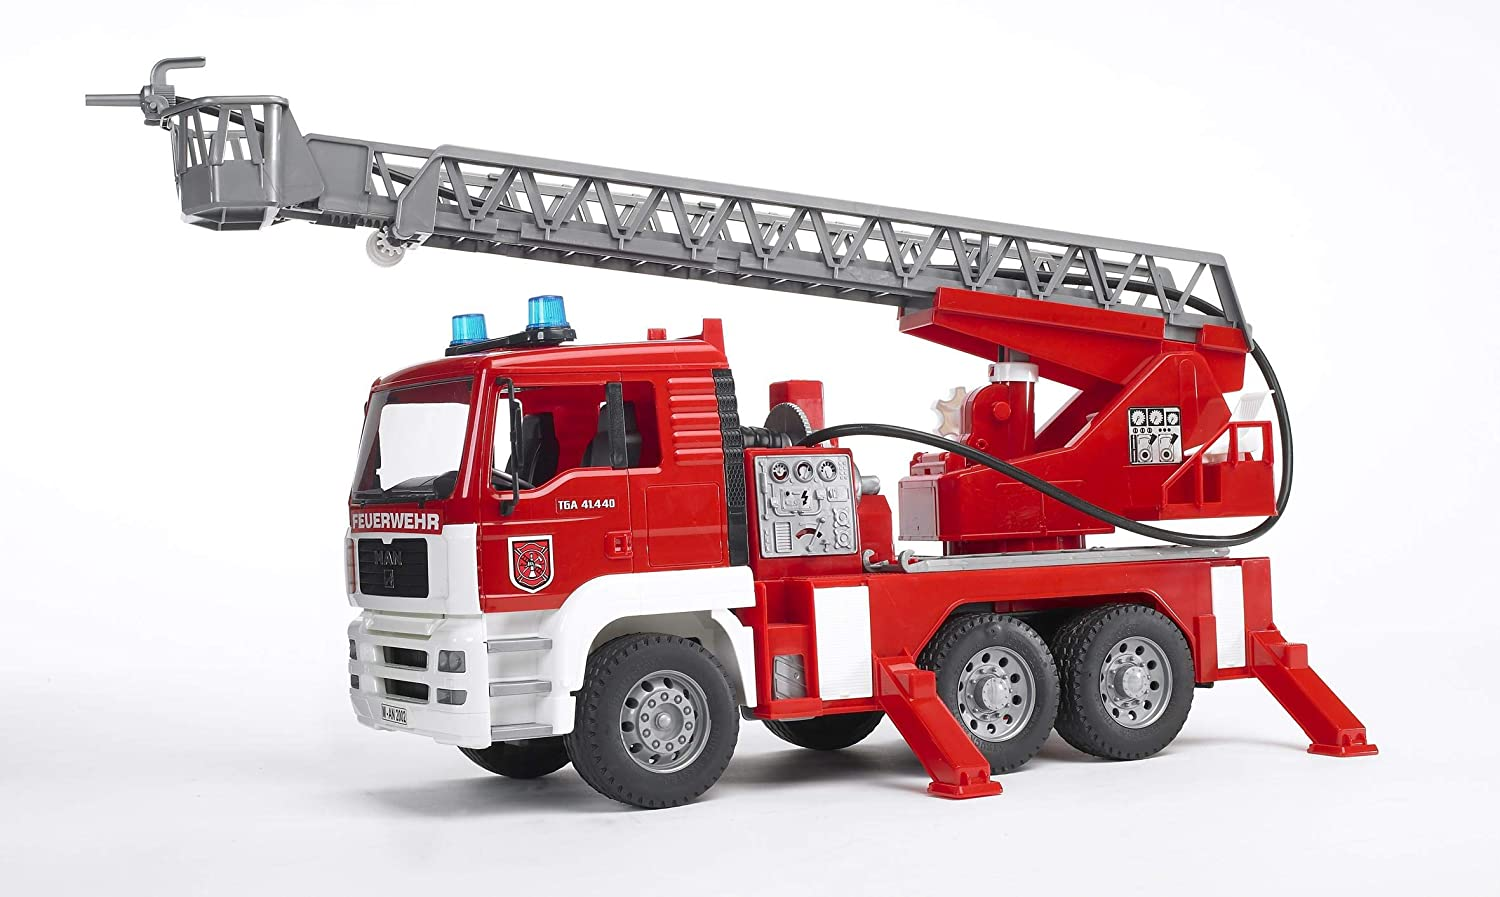 Bruder 02771 MAN Fire Engine with Water Pump, and Light & Sound Module